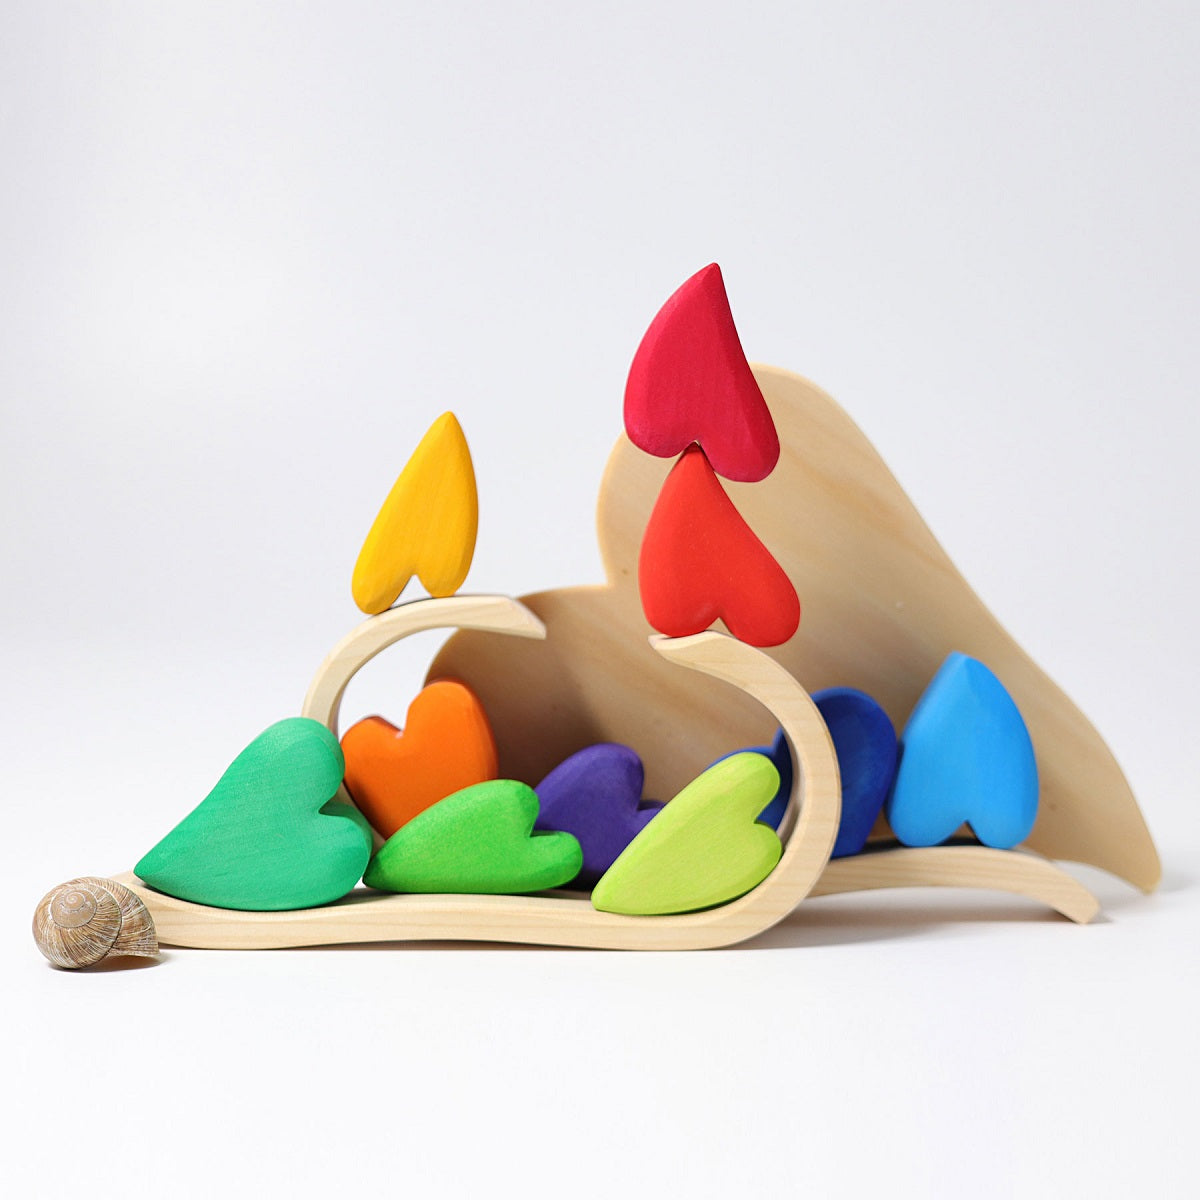 on a white background, natural wooden curved pieces with colourful wooden hearts balanced on them. A snail shell in the foreground.